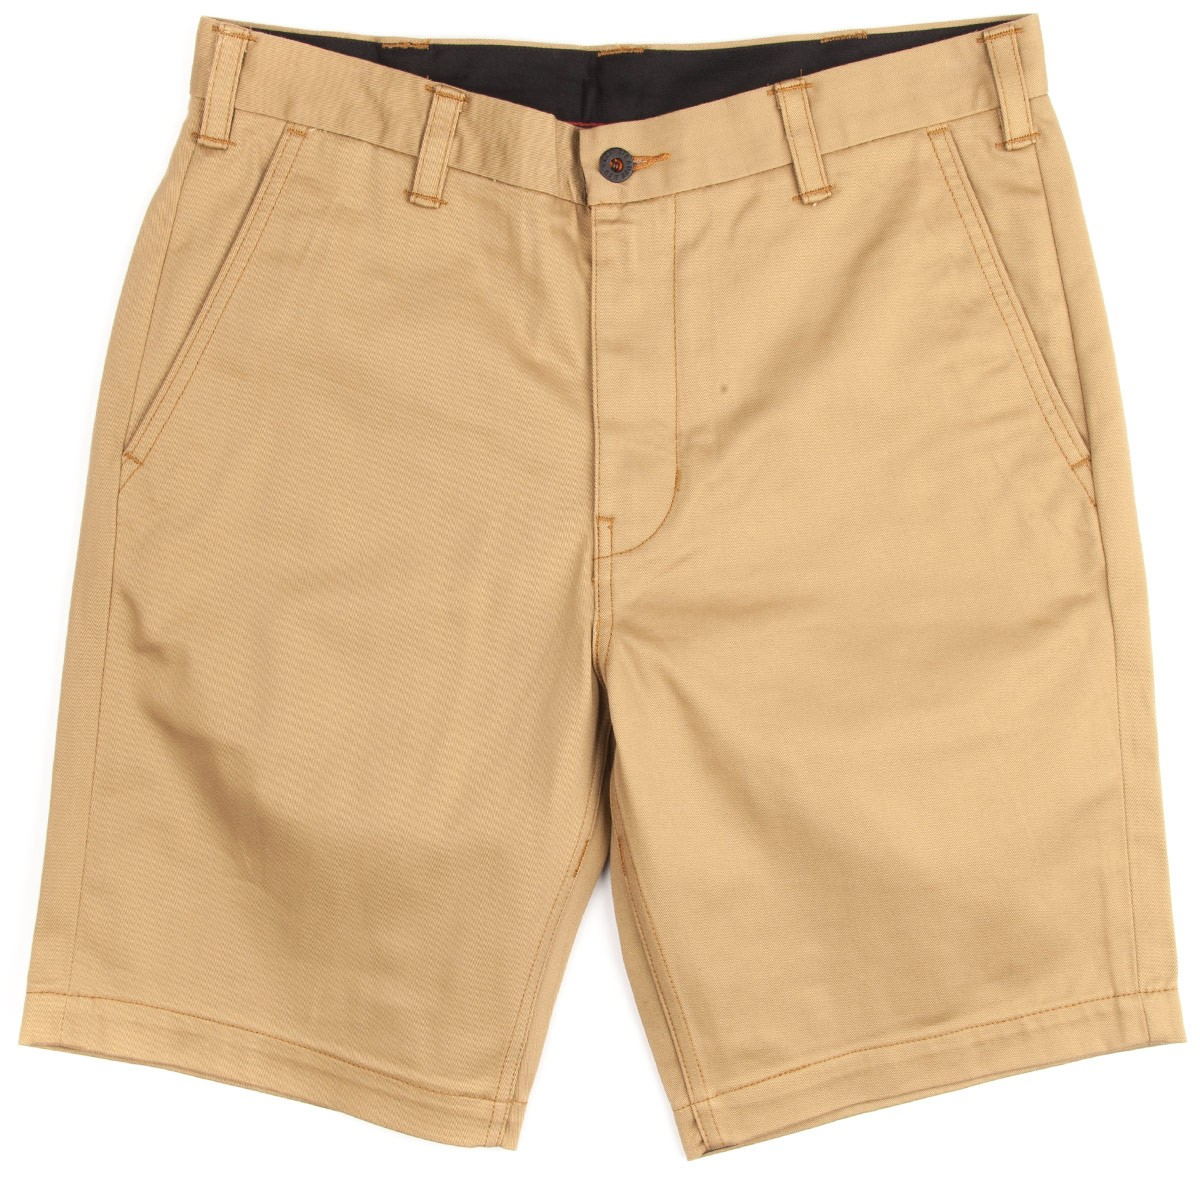 Work Shorts - Harvest Gold Twill